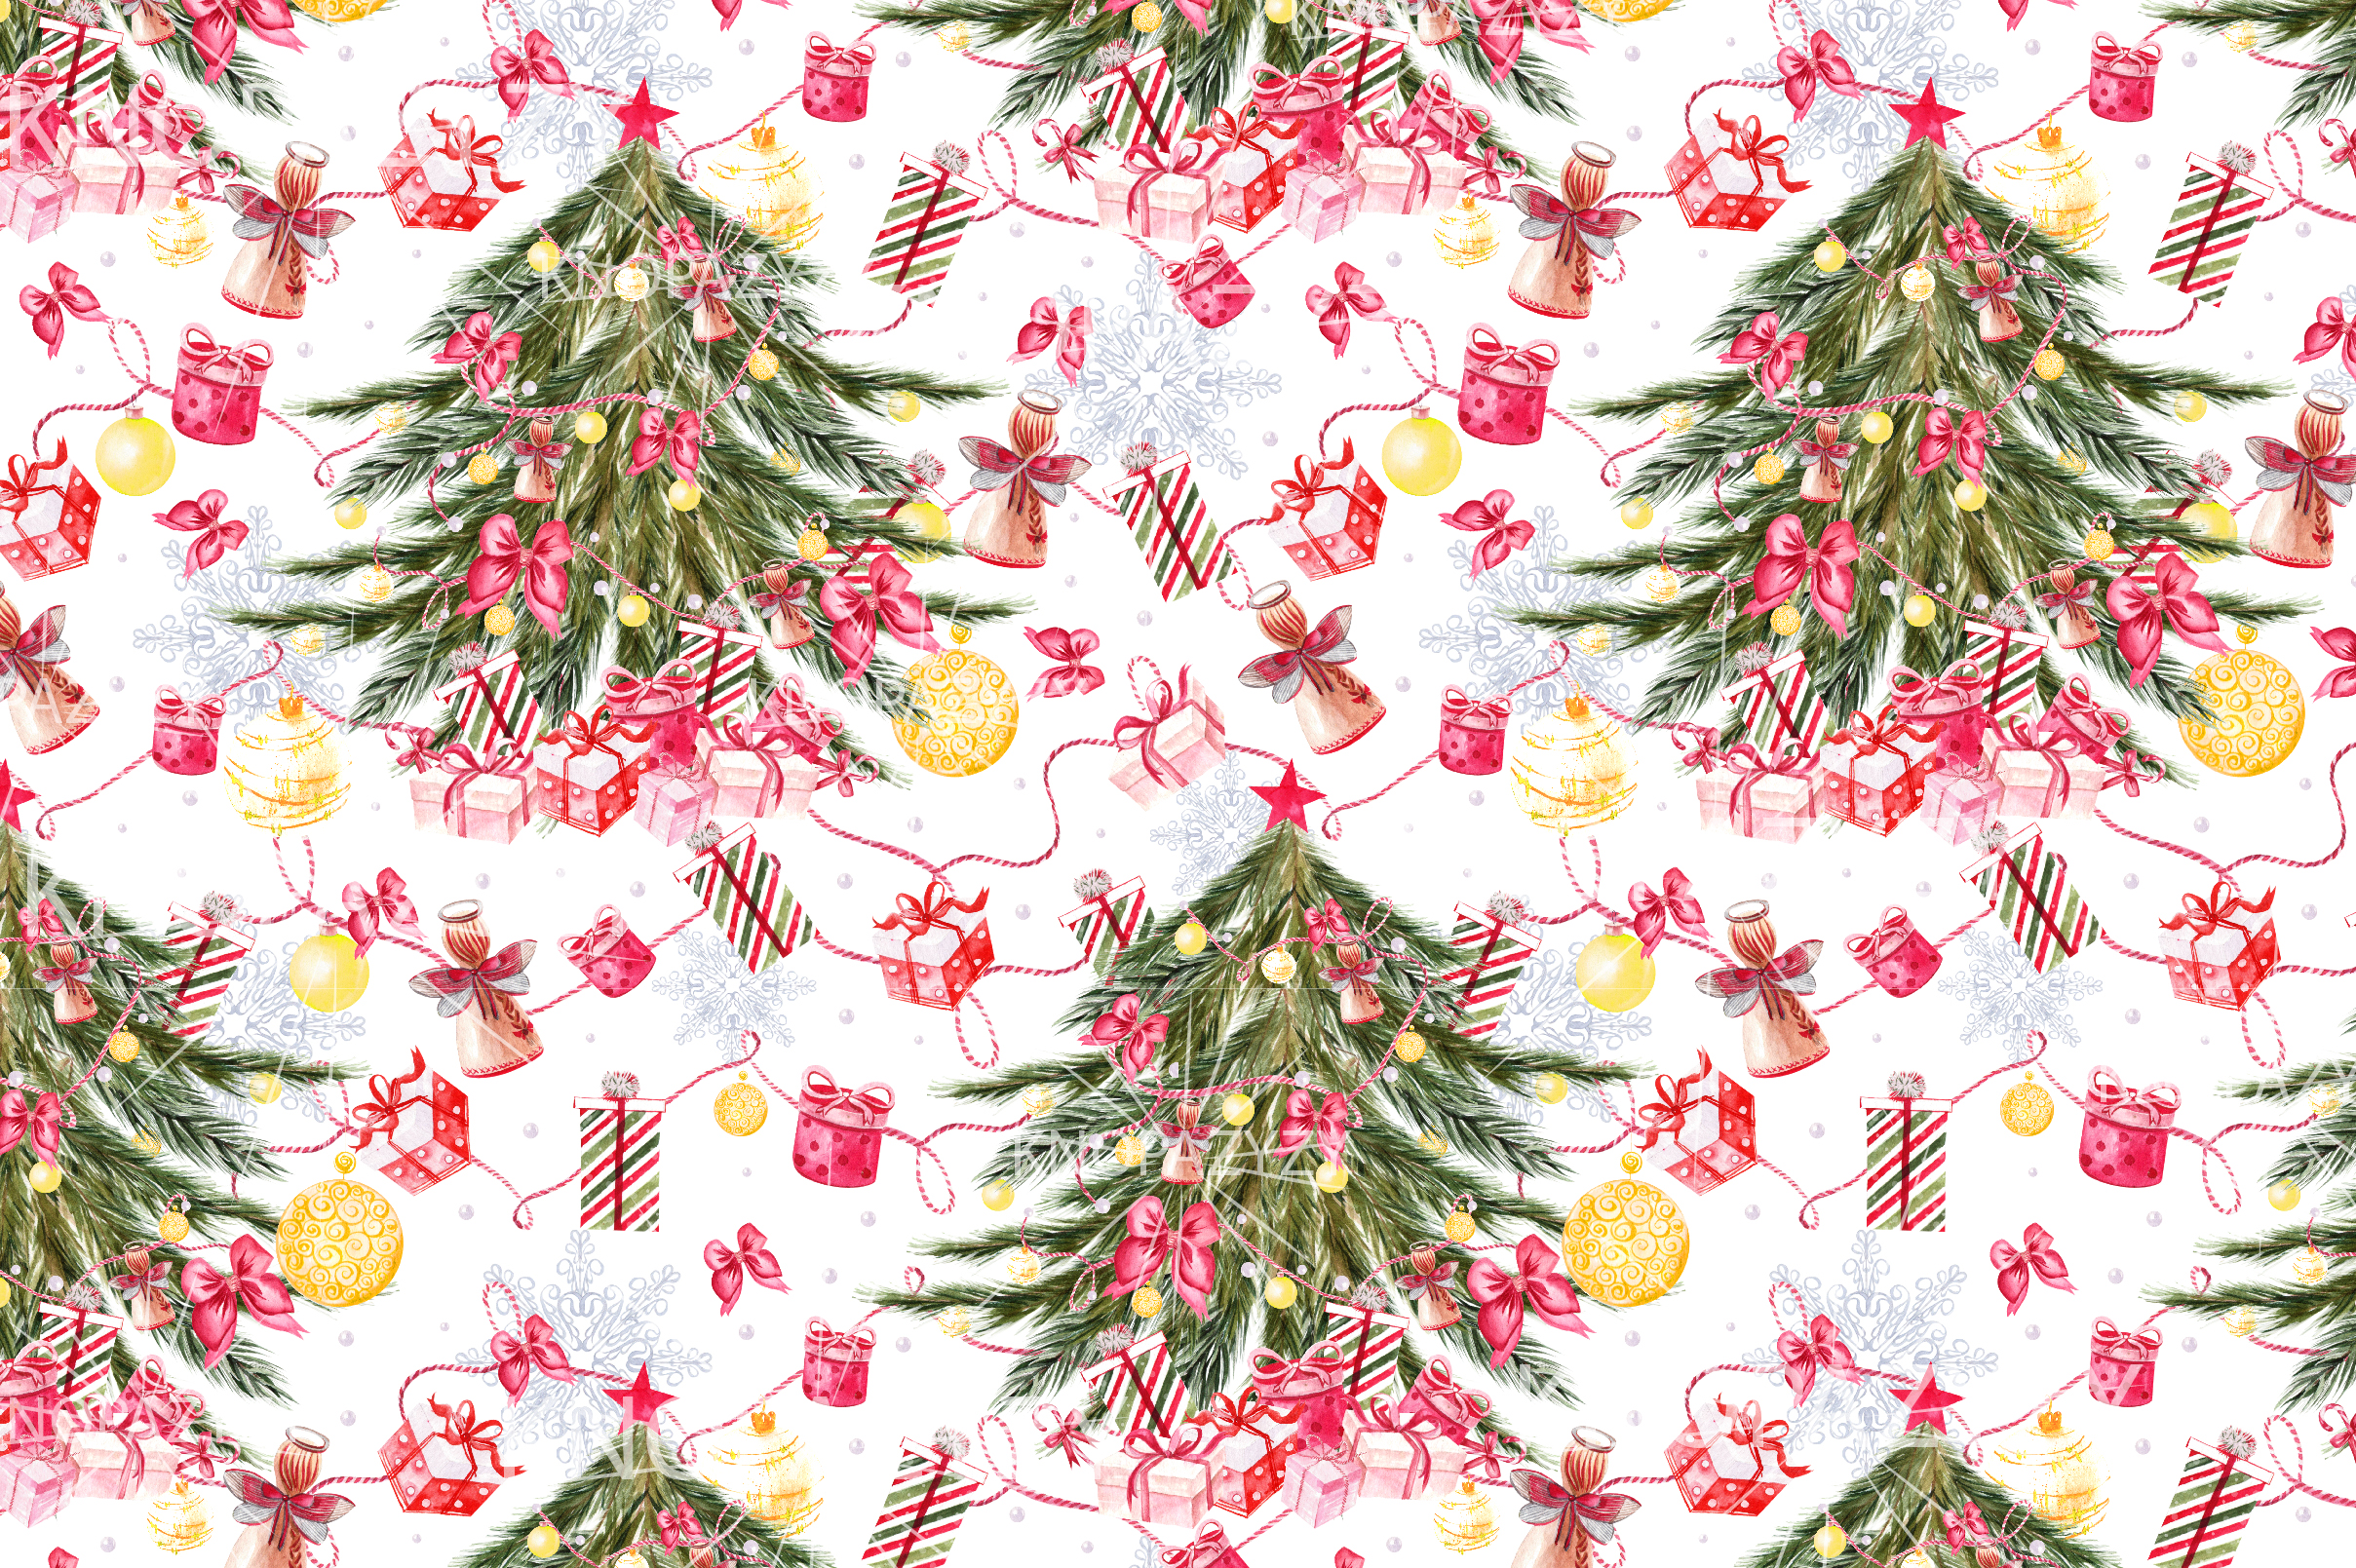 Hand Drawn Watercolor Christmas 13 Patterns example image 10